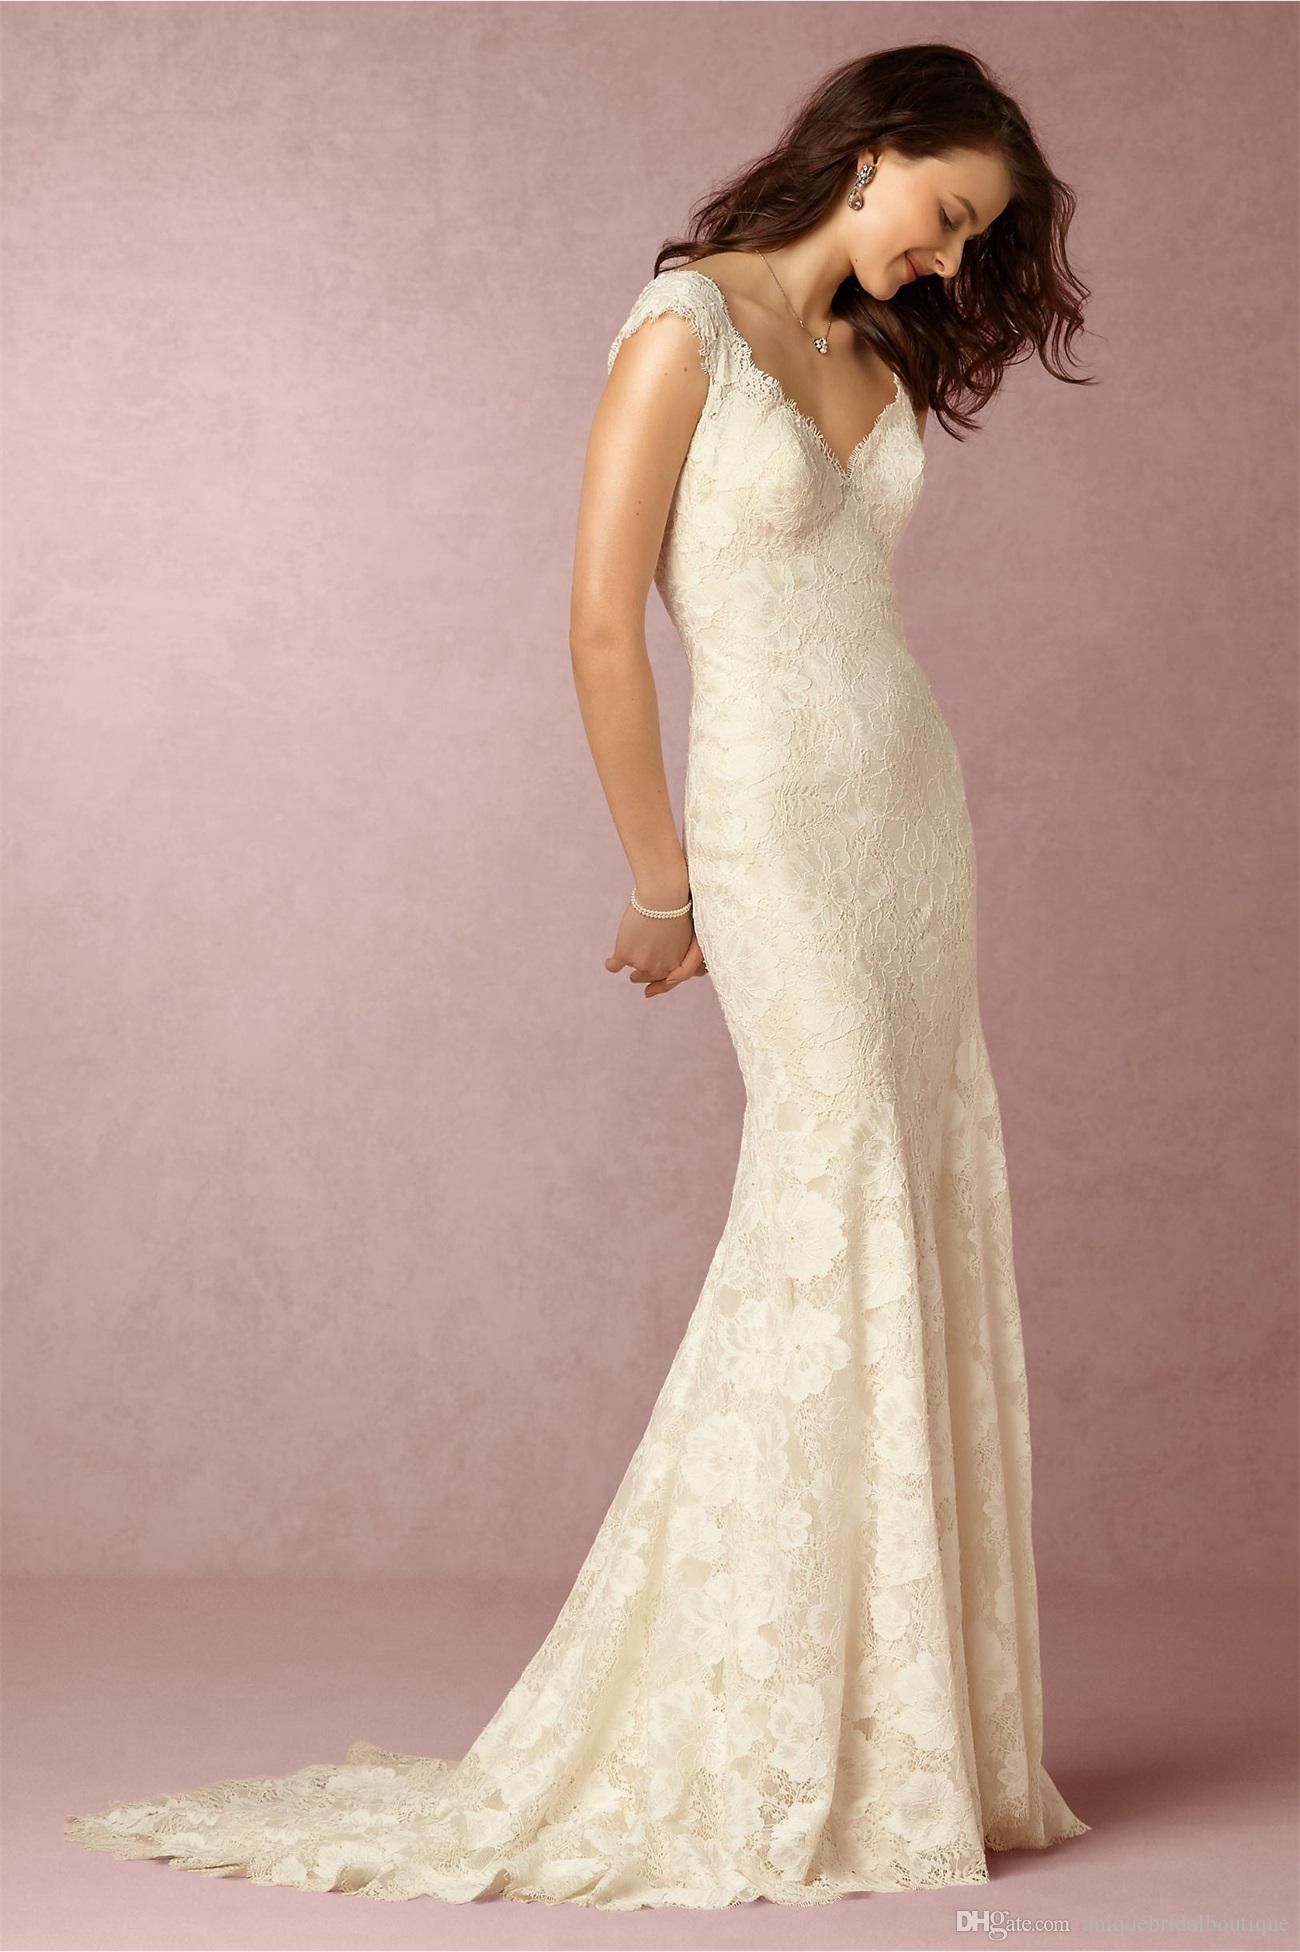 Bhldn 2016 Cap Sleeves Wedding Dresses With V Neck And Sweep Train ...